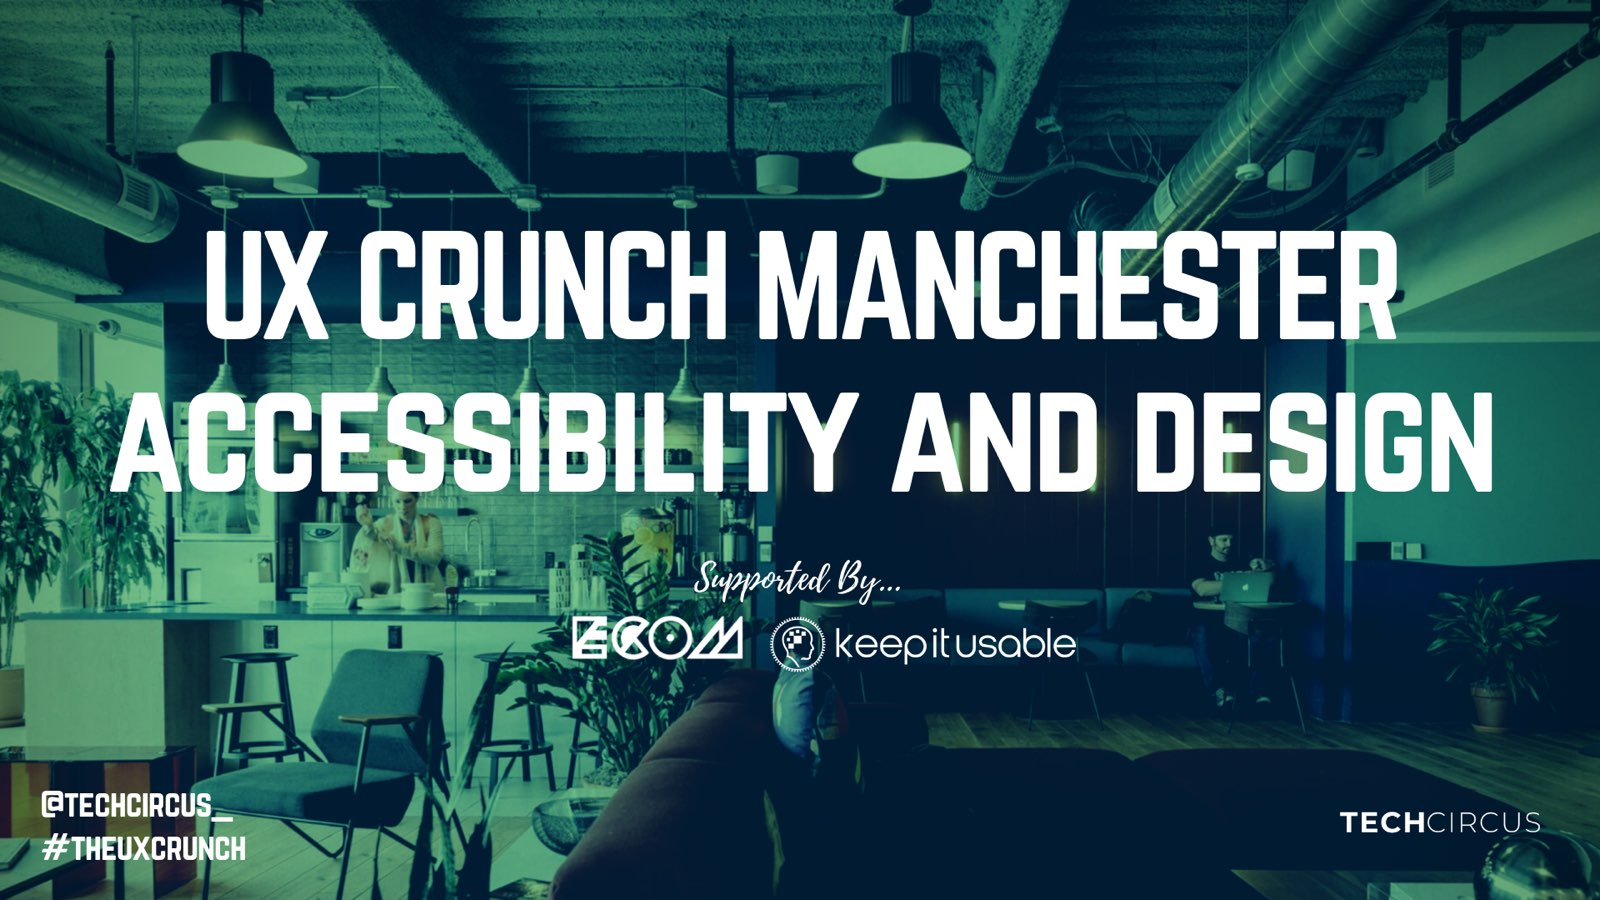 Keep It Usable - sponsors of UX Crunch Manchester